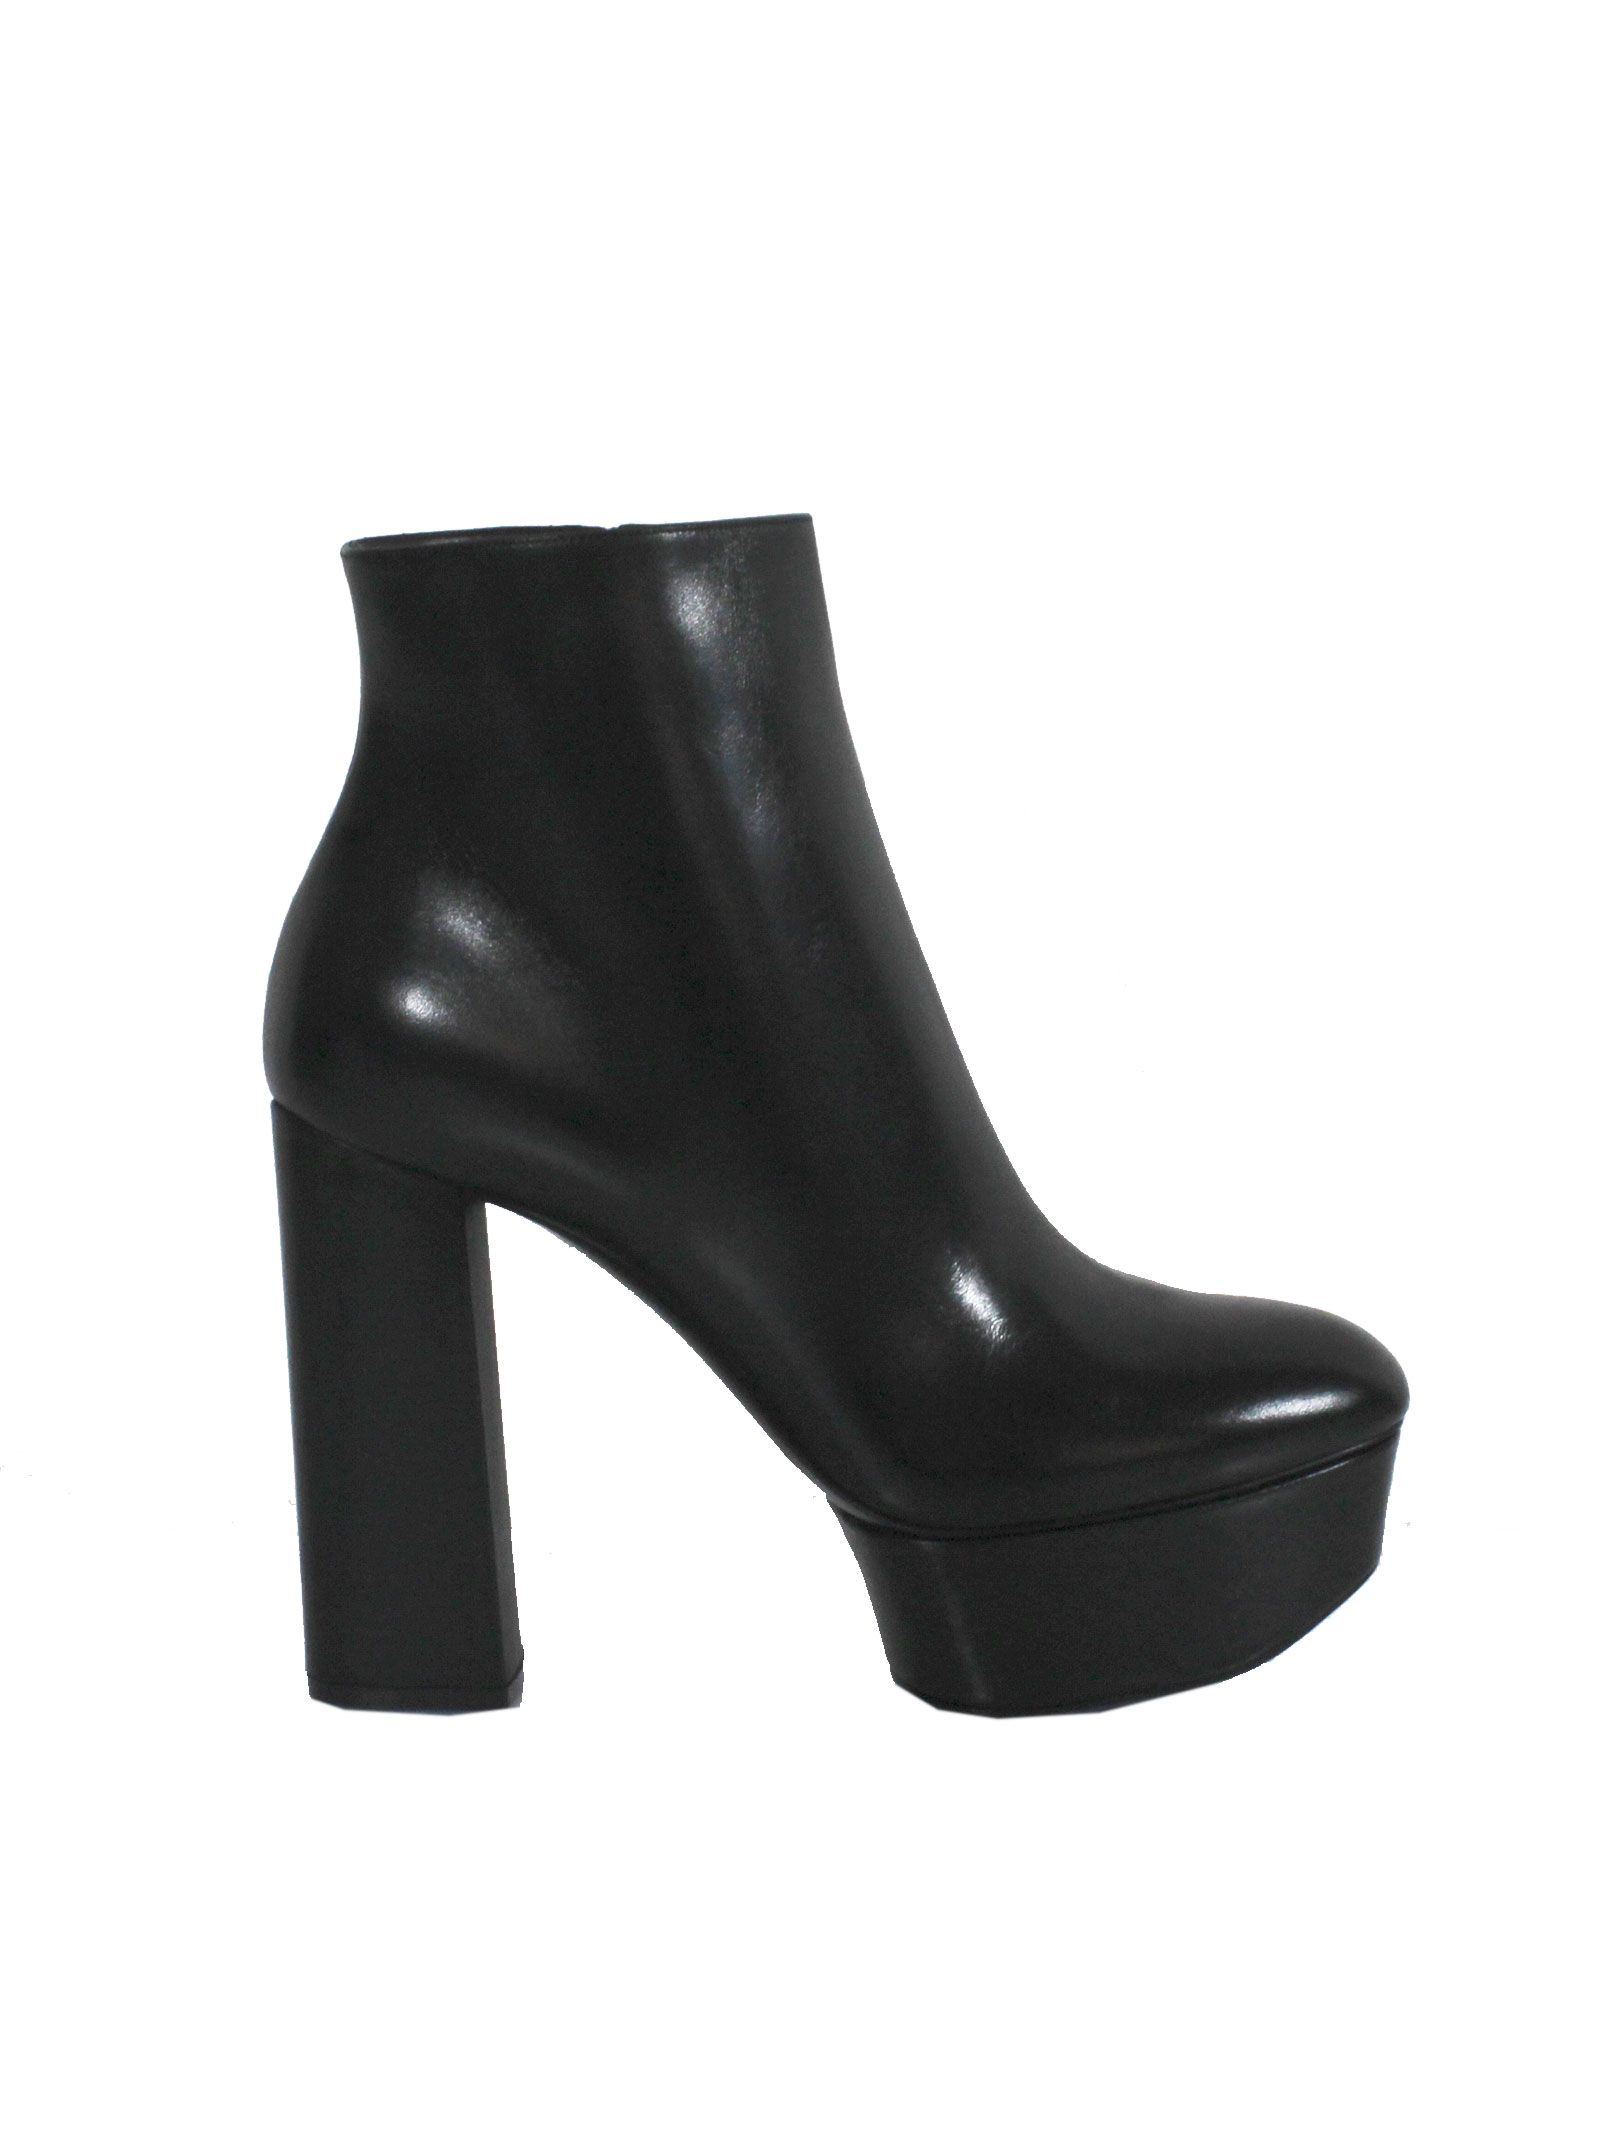 Black Leather Ankle Booties - Casadei - Circus